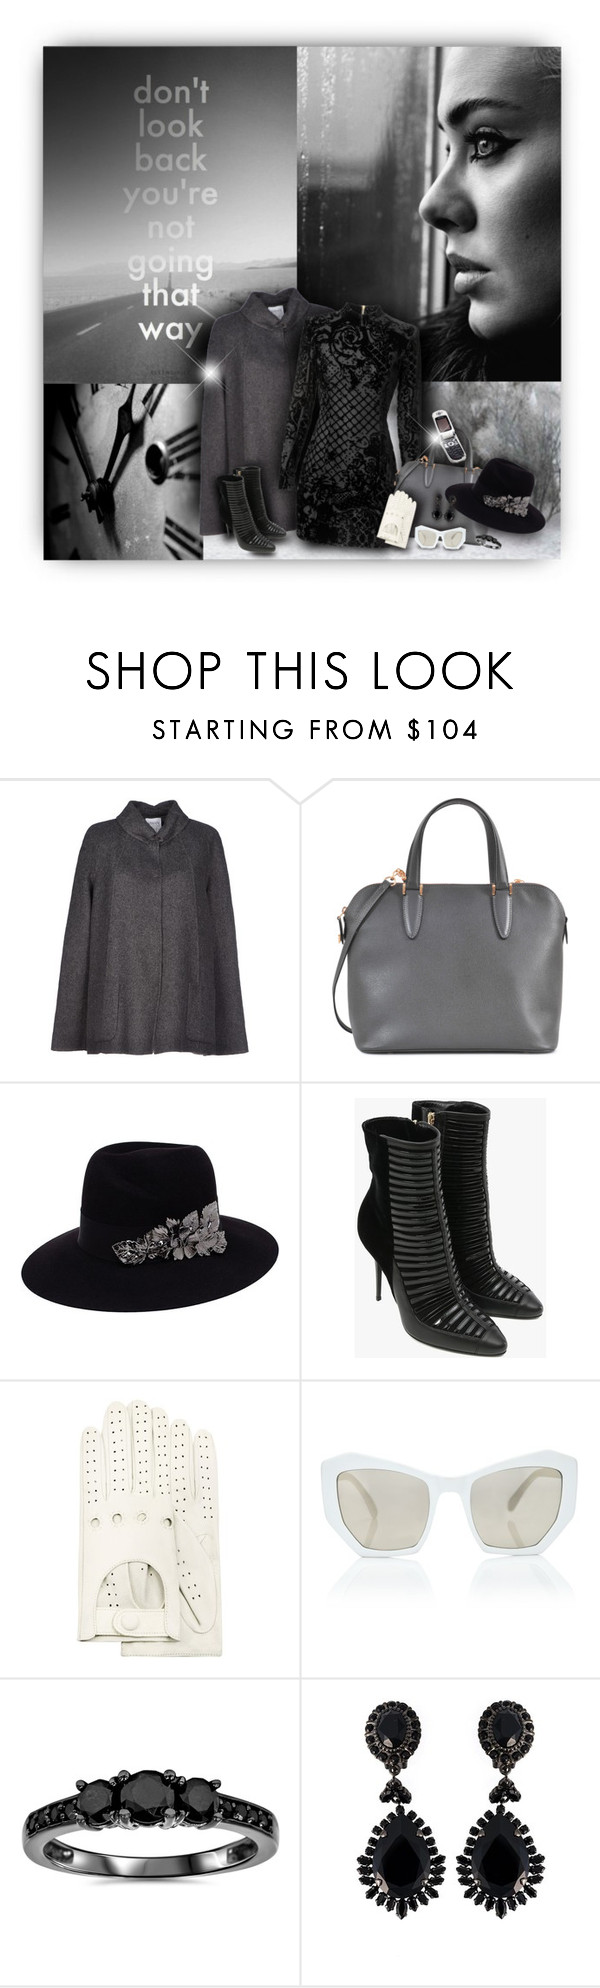 """""""Don't Look Back"""" by helenehrenhofer ❤ liked on Polyvore featuring Armani Collezioni, Valextra, Trilogy, Maison Michel, Balmain, Forzieri, Prism, Motorola, Givenchy and women's clothing"""